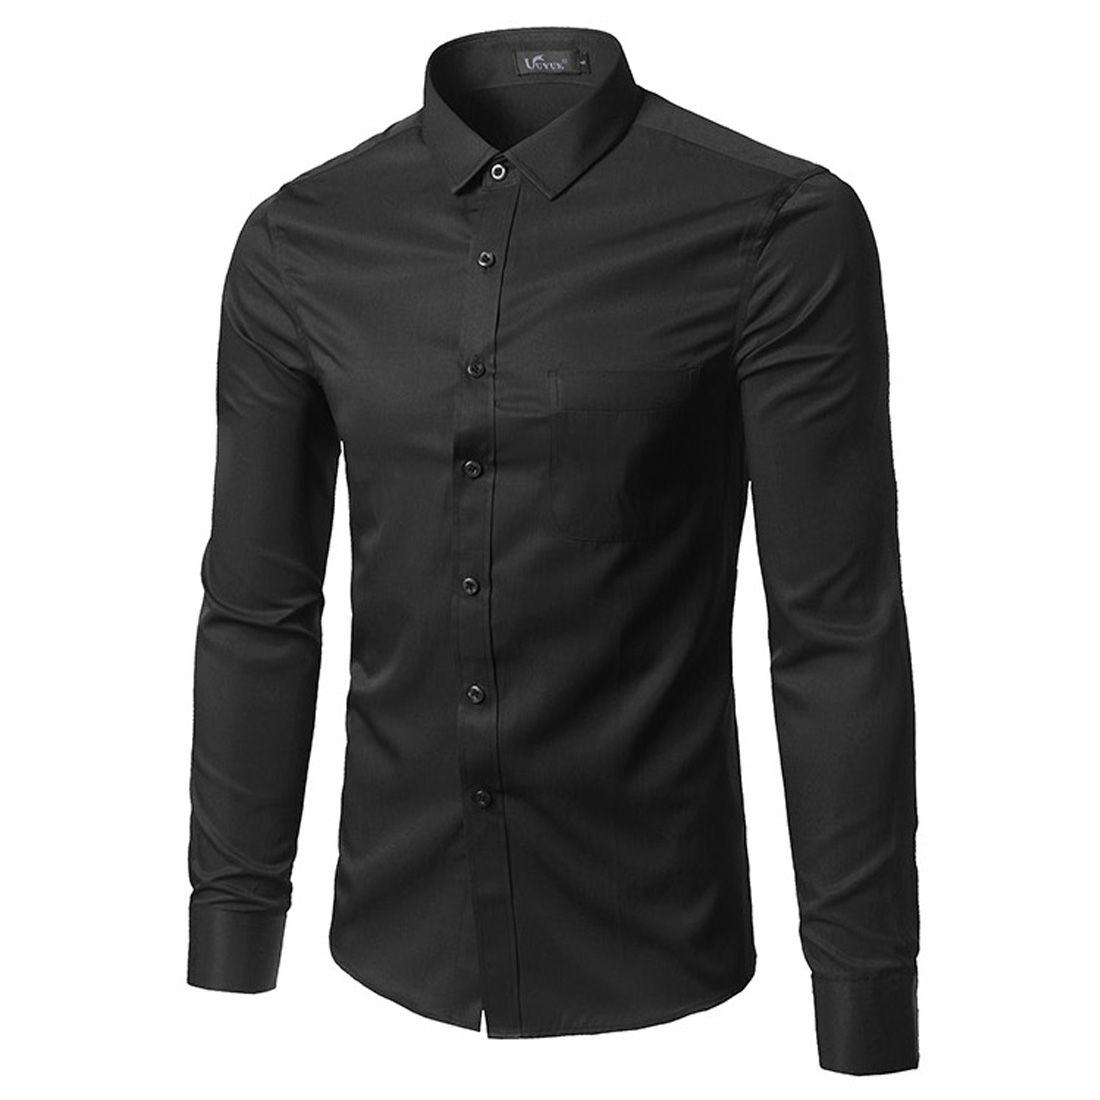 Mens black button up shirt artee shirt for Black tuxedo shirt for men